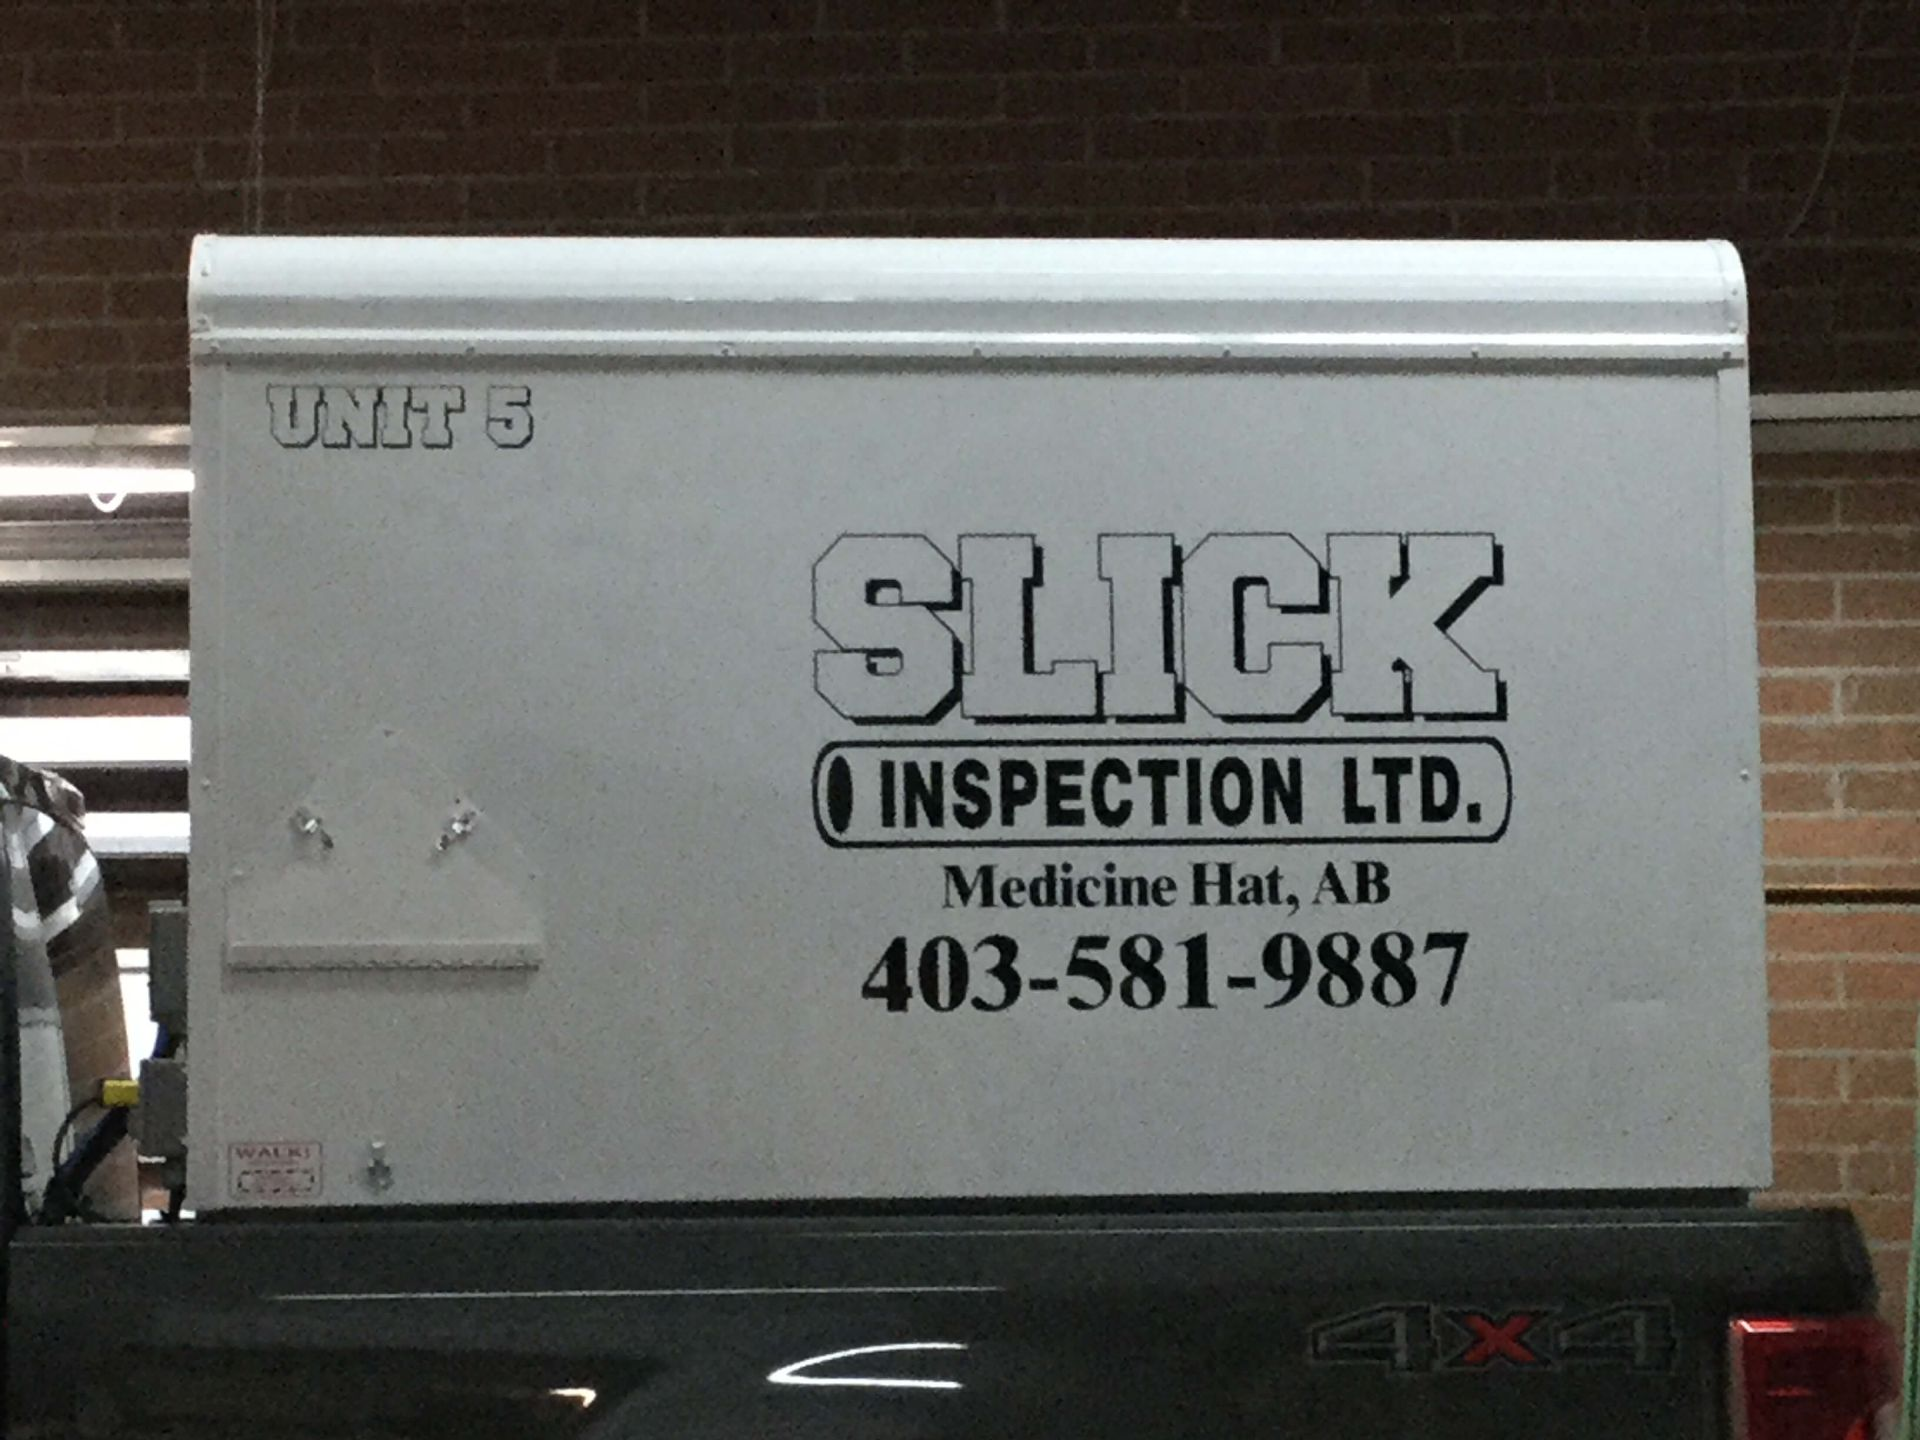 Slick inspection Ltd signage for trailer